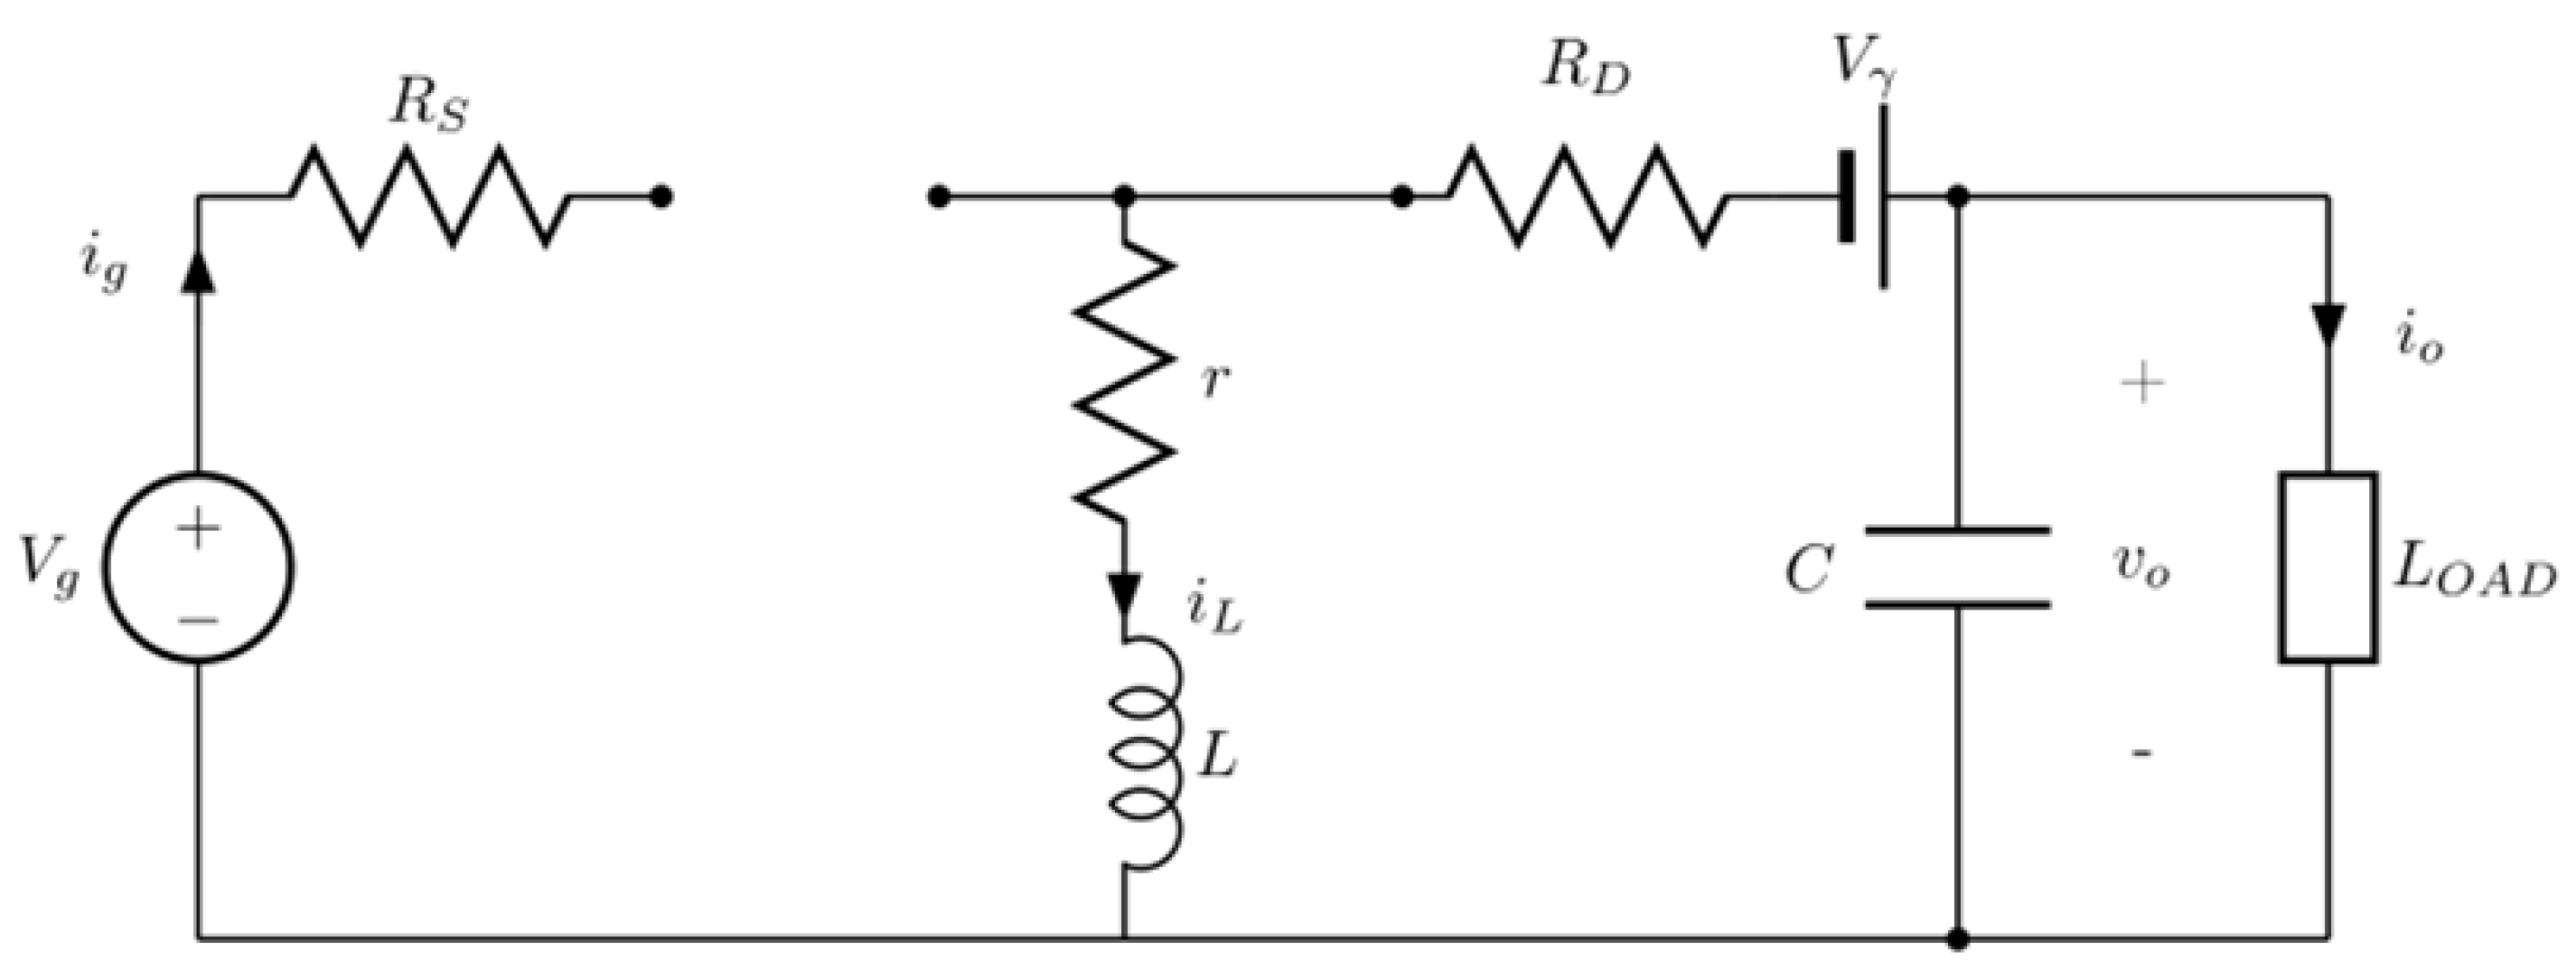 Applied Sciences Free Full Text Theoretical Assessment Of Dc To Converter Circuit Also Buck Boost Design No